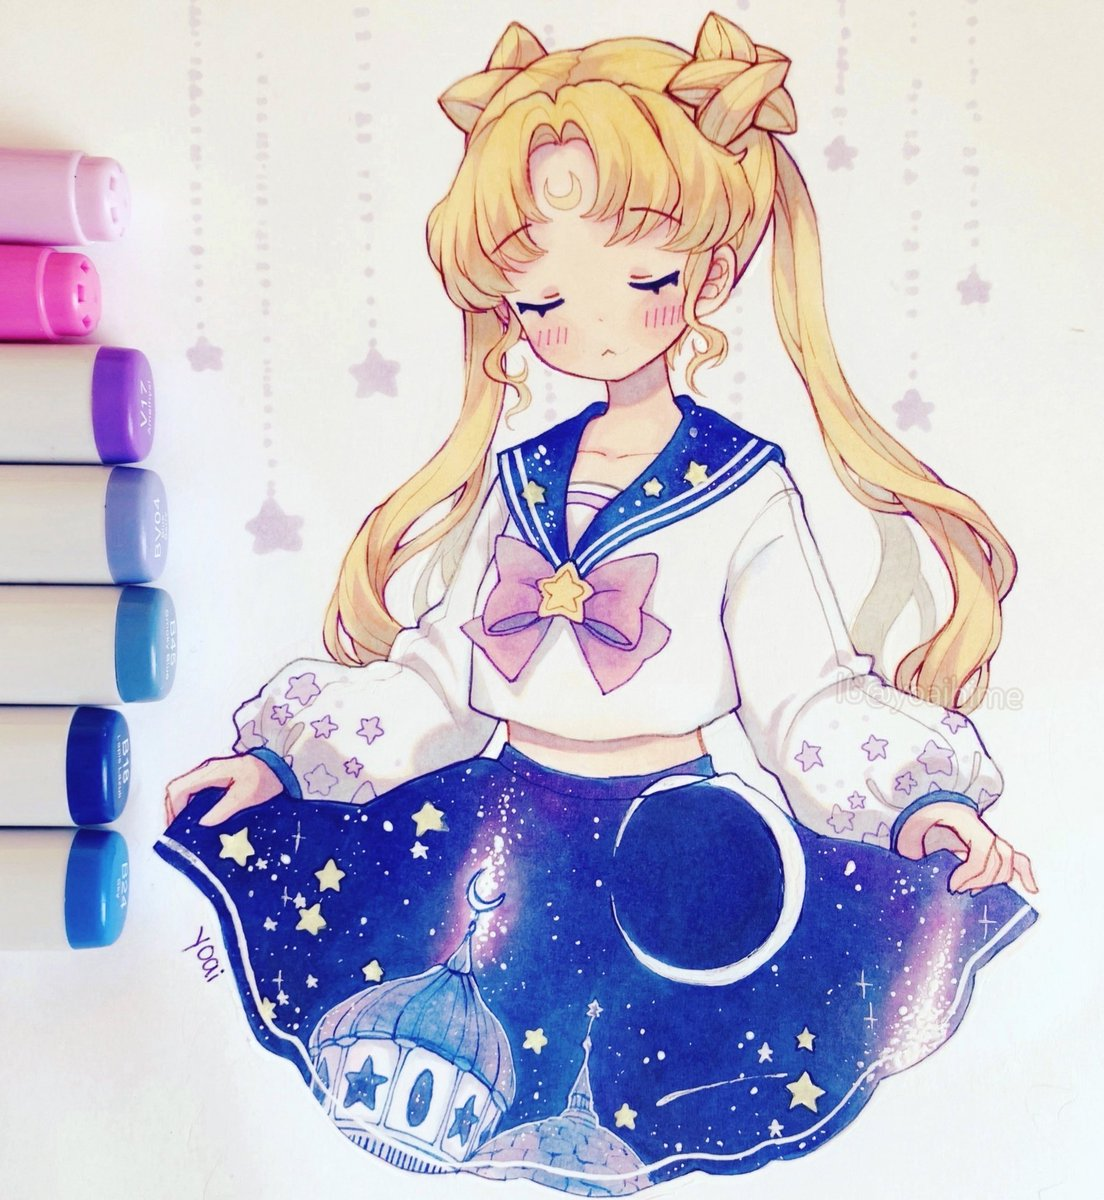 Replying to @Yoaihime: sailor moon & stars ⭐️ #fanart